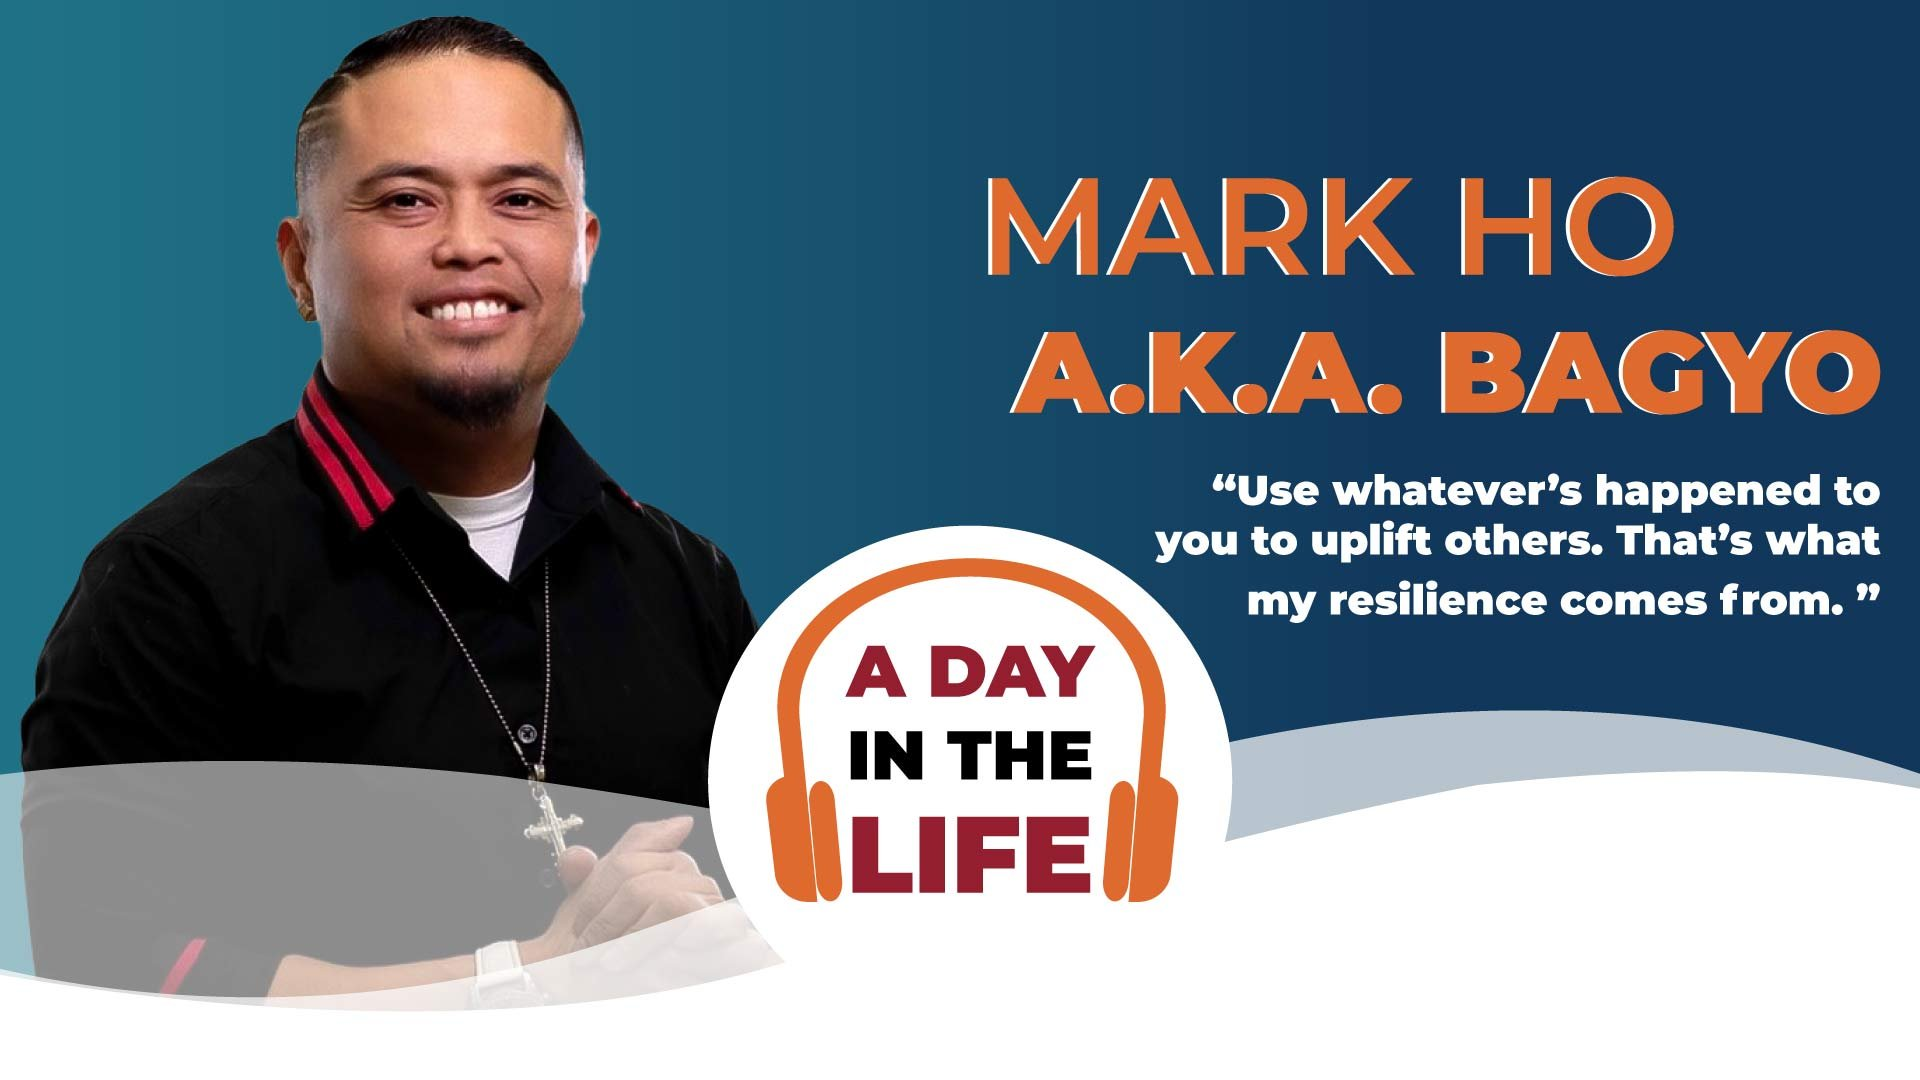 Myeloma patient and hiphop artist Mark Ho a.k.a Bagyo